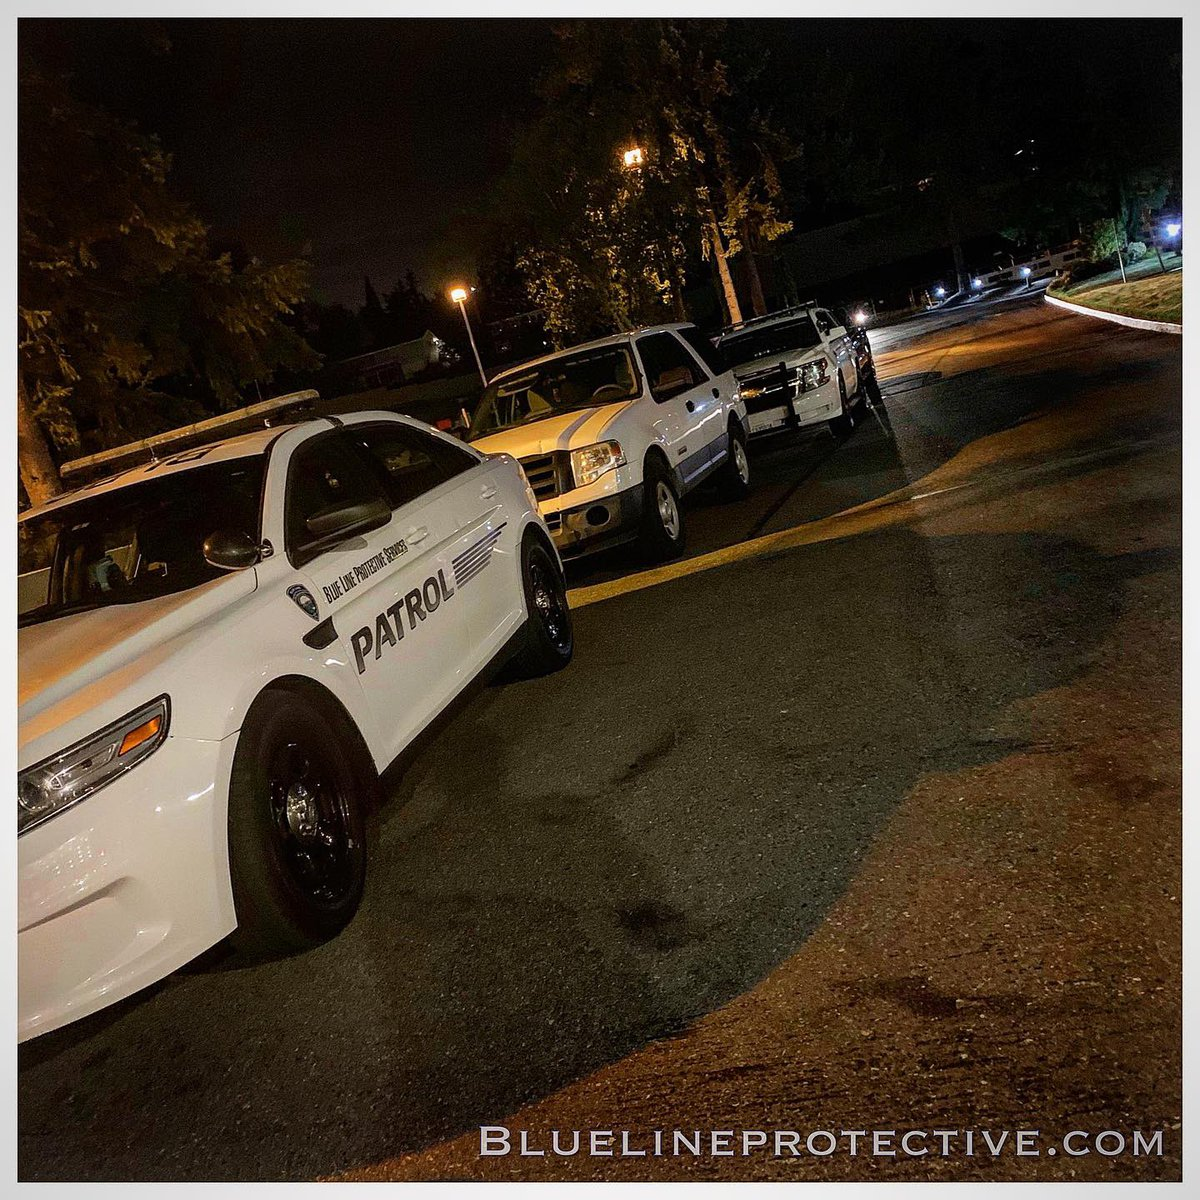 Doing a lil' rodent control during a furry convention...#bluelineprotective #events #furryconvention #furrycon #furry #furries #rodent #cats #dogs #rats #mice #animal #animals<br>http://pic.twitter.com/IwCuNs2iJo